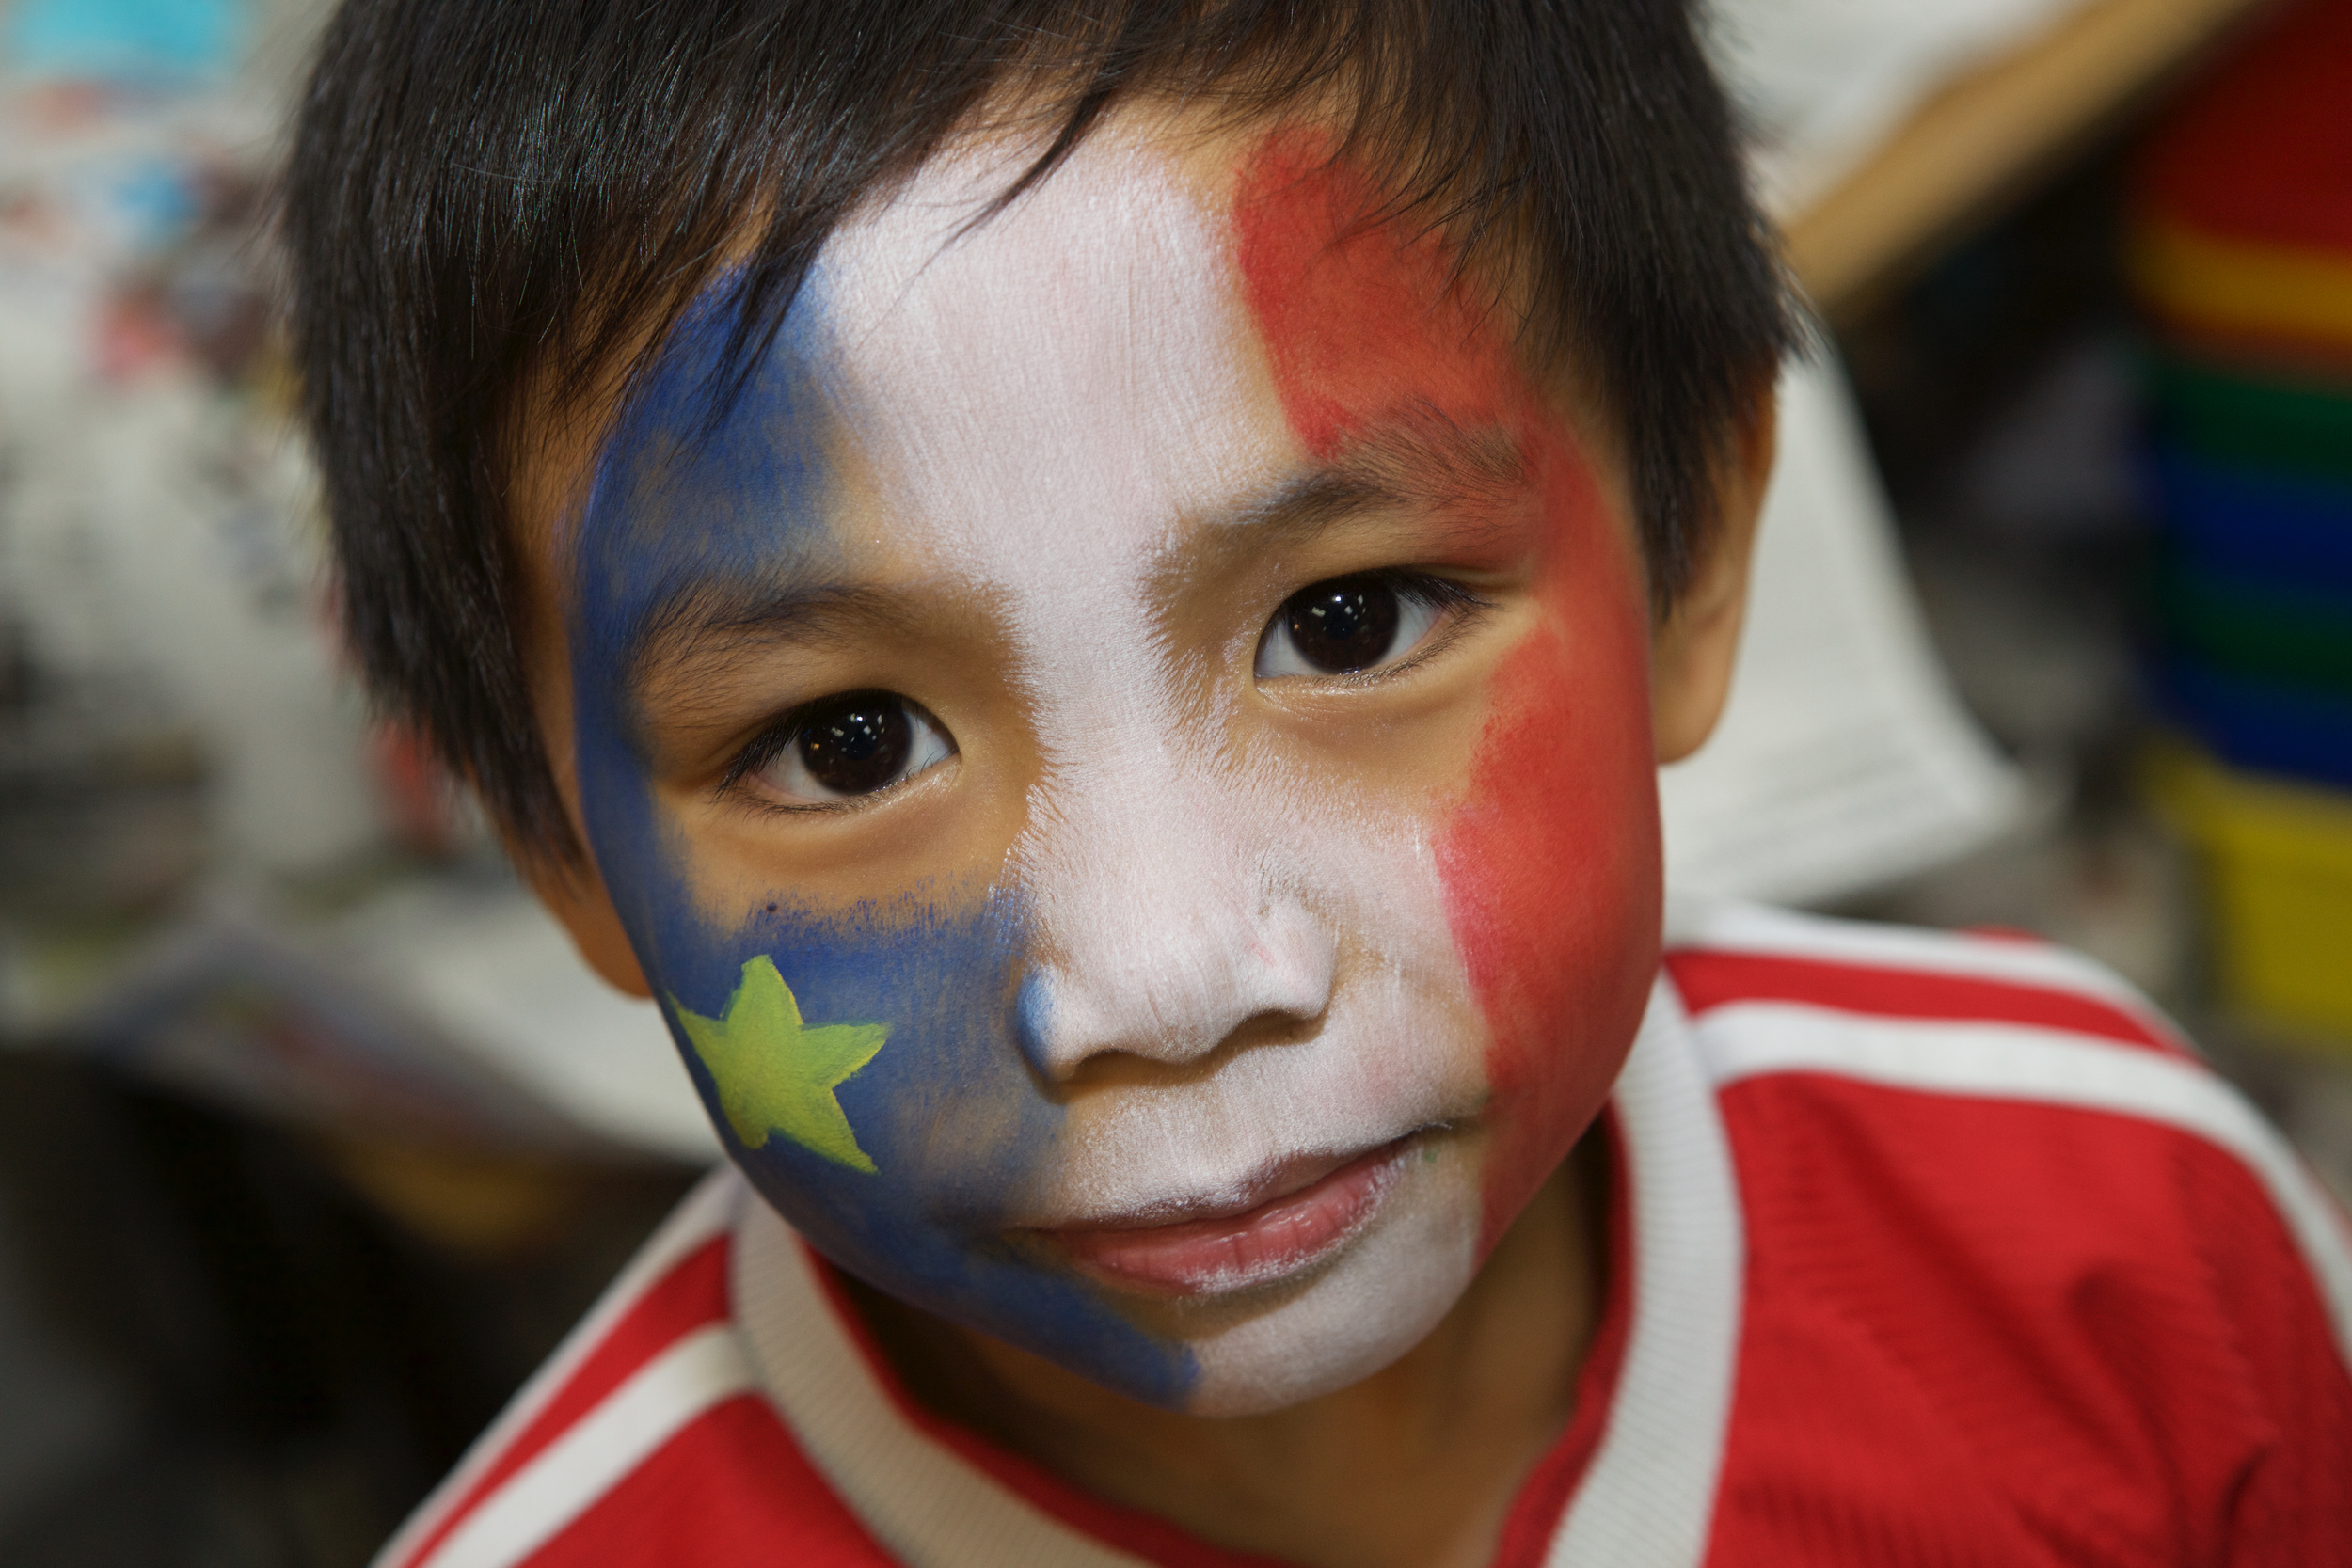 Face painting was part of the festival. One of my favourites was this little guy who choose to have the Acadian flag painted on his face. Nice one!